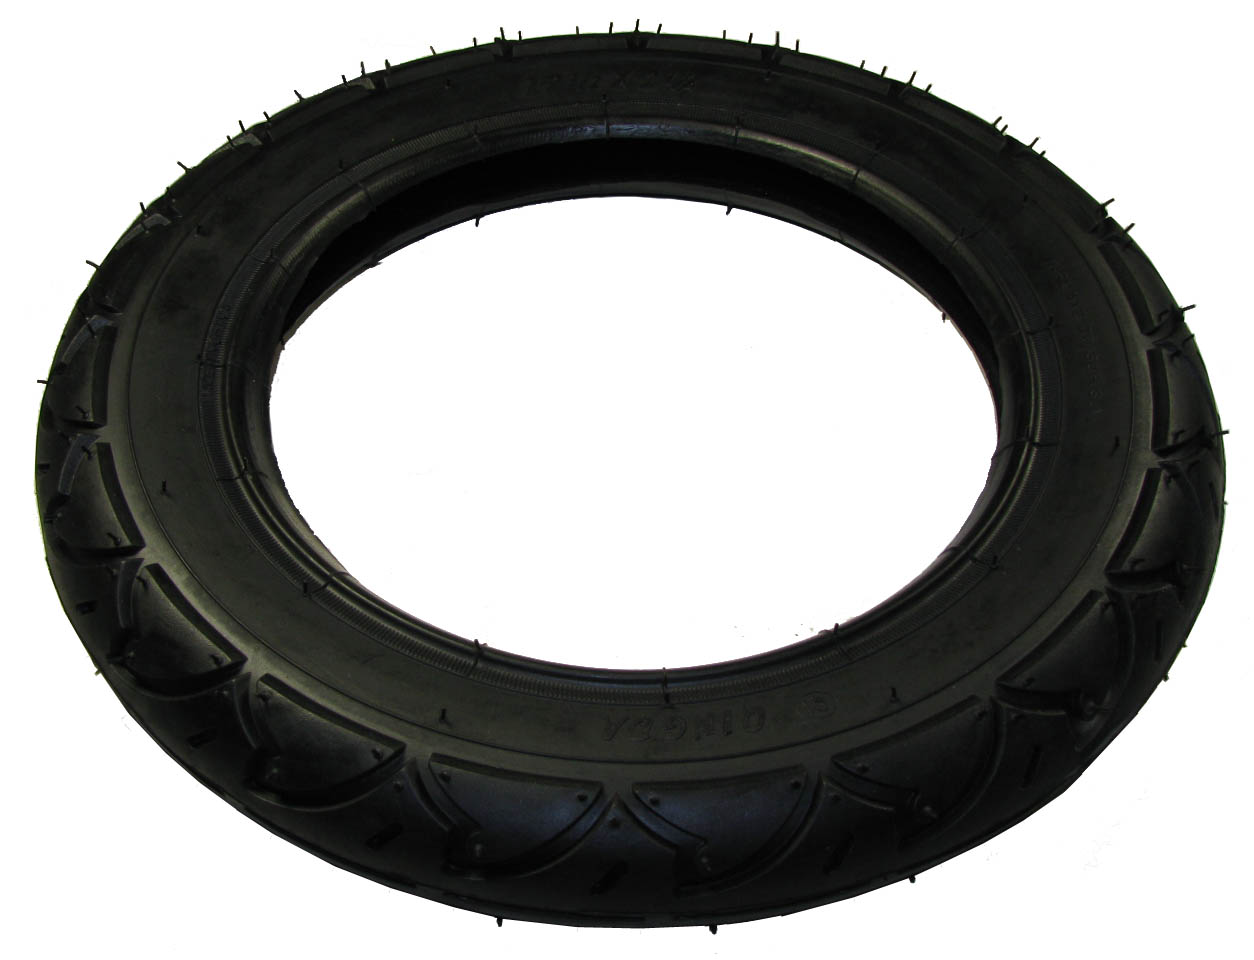 All tire and inner tube for Tire tub